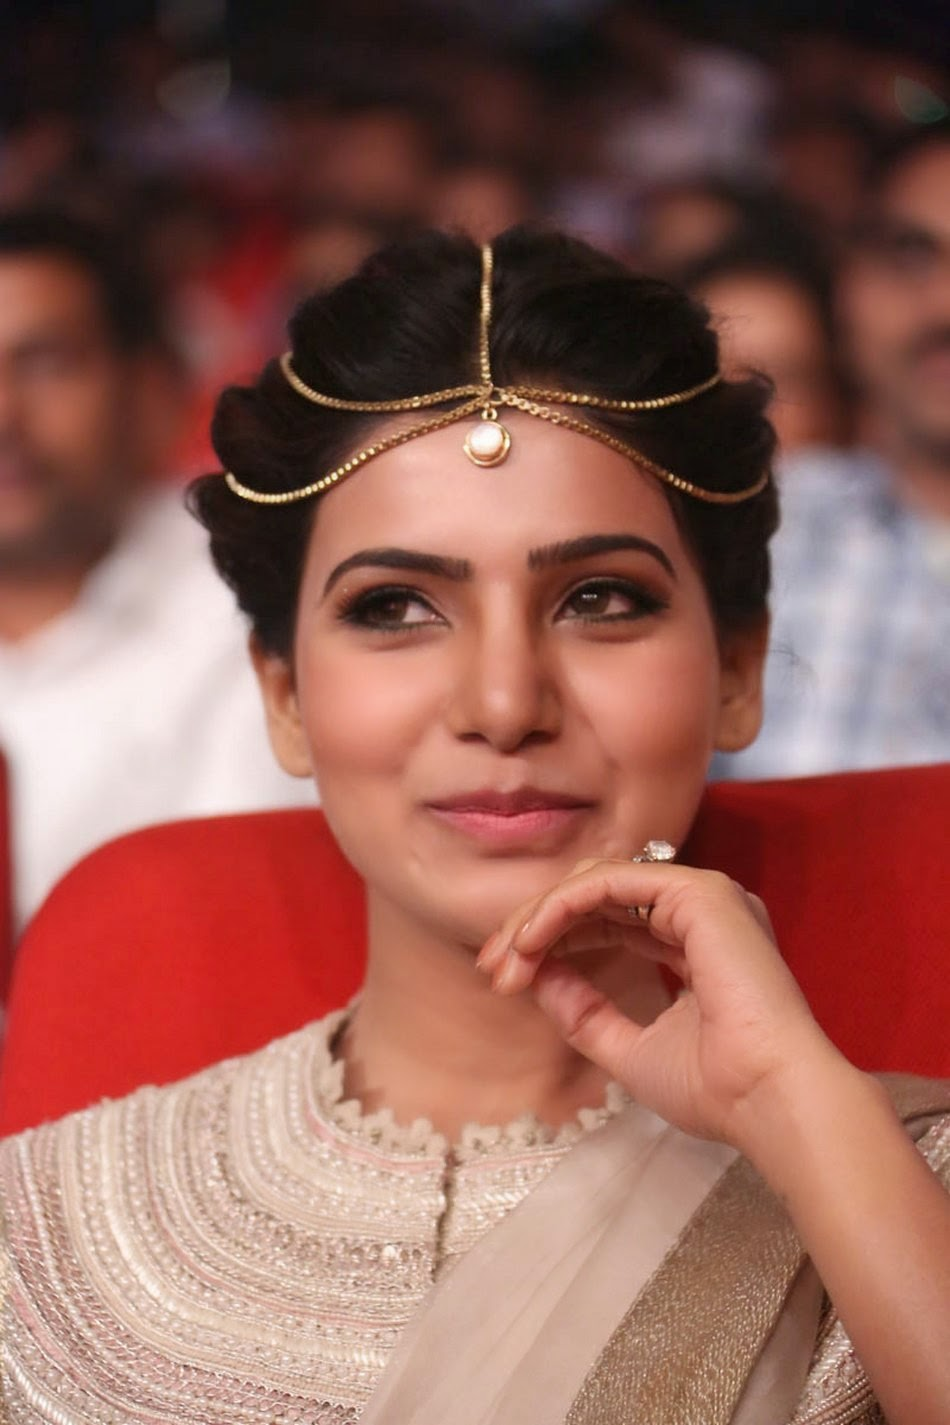 Samantha Hot Photos, Samantha updates,Samantha Latest Hot Photo Shoot Stills, Samantha Hot, Hot Samantha,Samantha gossips , Samantha New Pics, Samantha Cute Stills, Photos, Samantha in Churidar, Samantha in Langa Voni, Samantha in Saree, Samantha in Bikini , Samantha Bikini Hot Pics, Samantha Latest Hot Pics, Samantha Hot Images, Samantha new photos, Samantha Sexy Pics, Samantha functions ,Samantha data ,Telugu Actress Samantha Nude photos,Samantha best photos